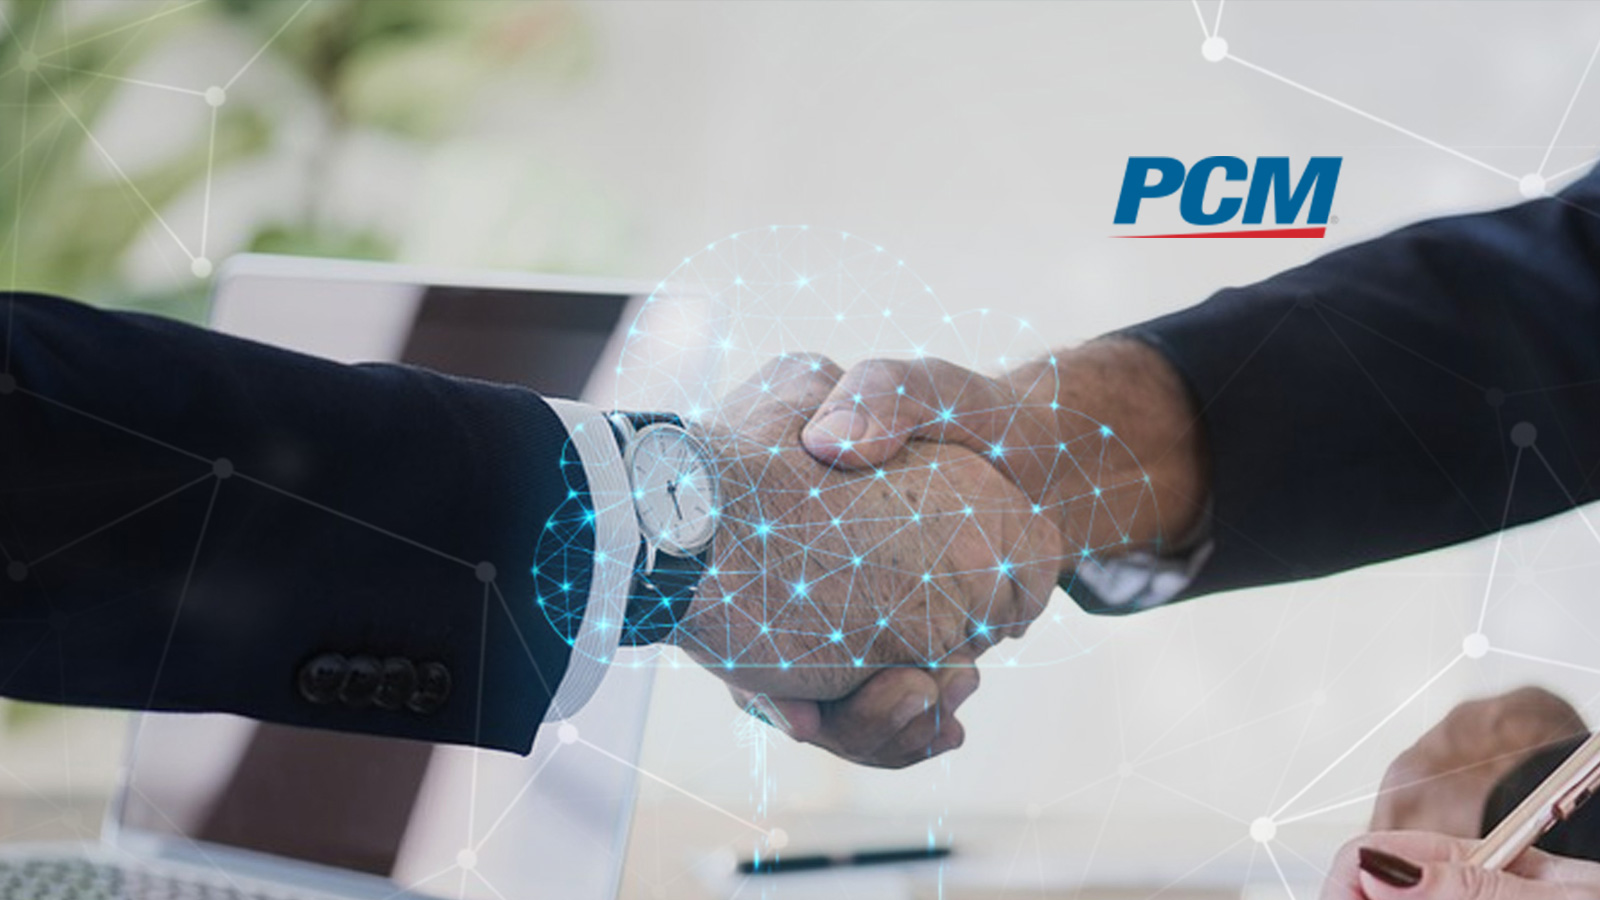 PCM Partners with Ringcentral to Bring Cloud Communications